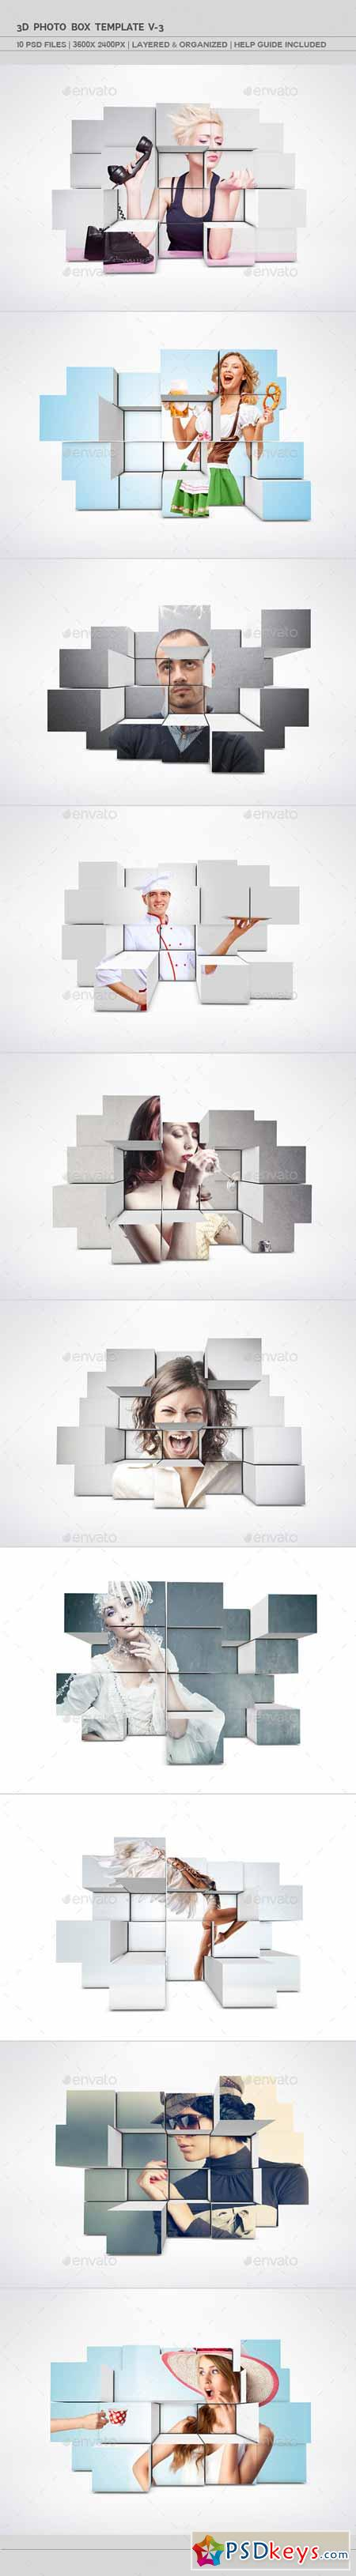 3D Photo Box Template V-3 10826558 » Free Download Photoshop